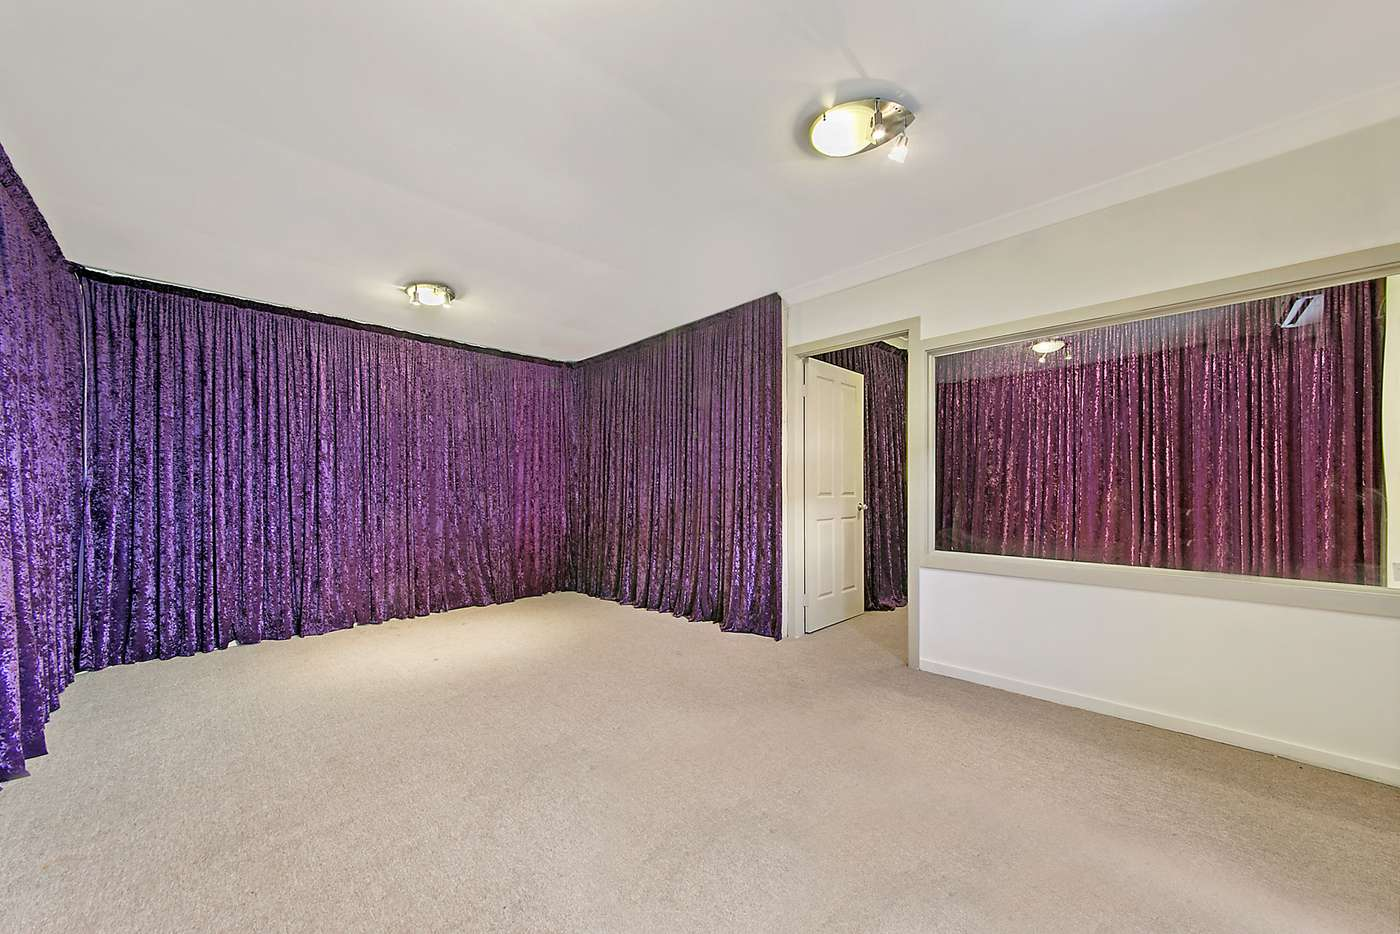 Fifth view of Homely house listing, 44 Woodbine Street, Yagoona NSW 2199